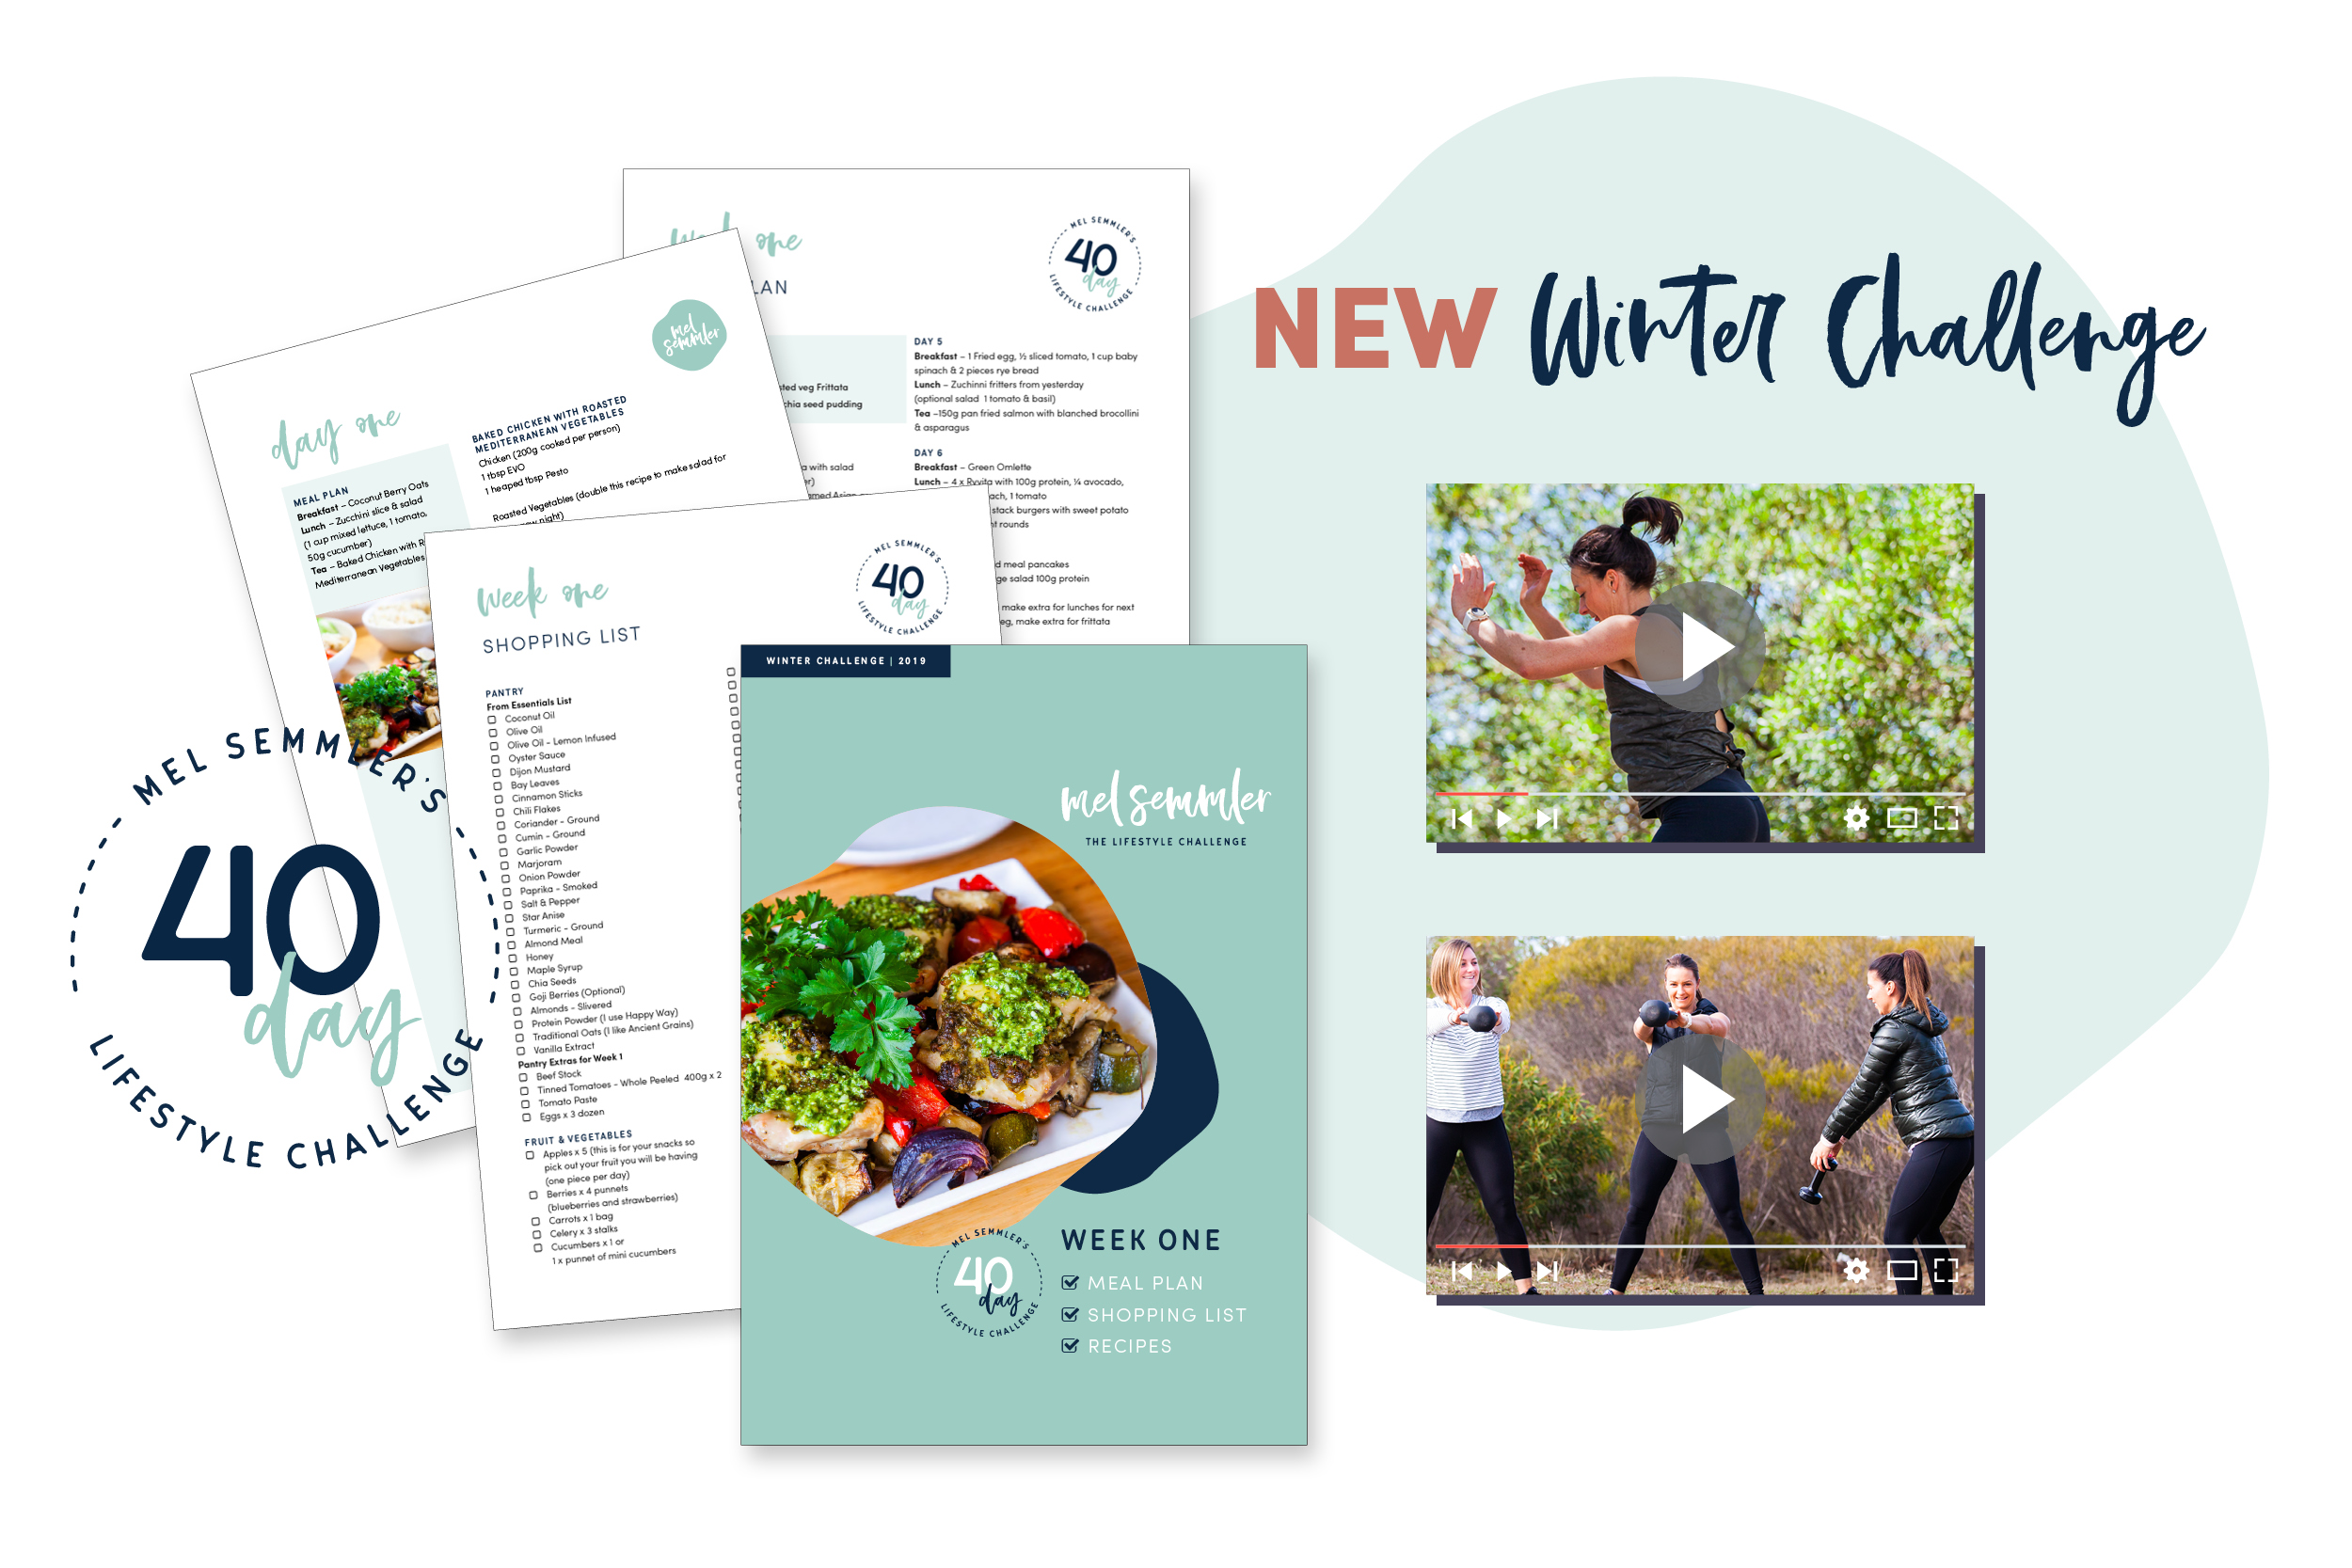 40 Day Winter Challenge Starts August 19th, 2019 - Sign up today to be part of a challenge that will lead to a healthier, happier you!